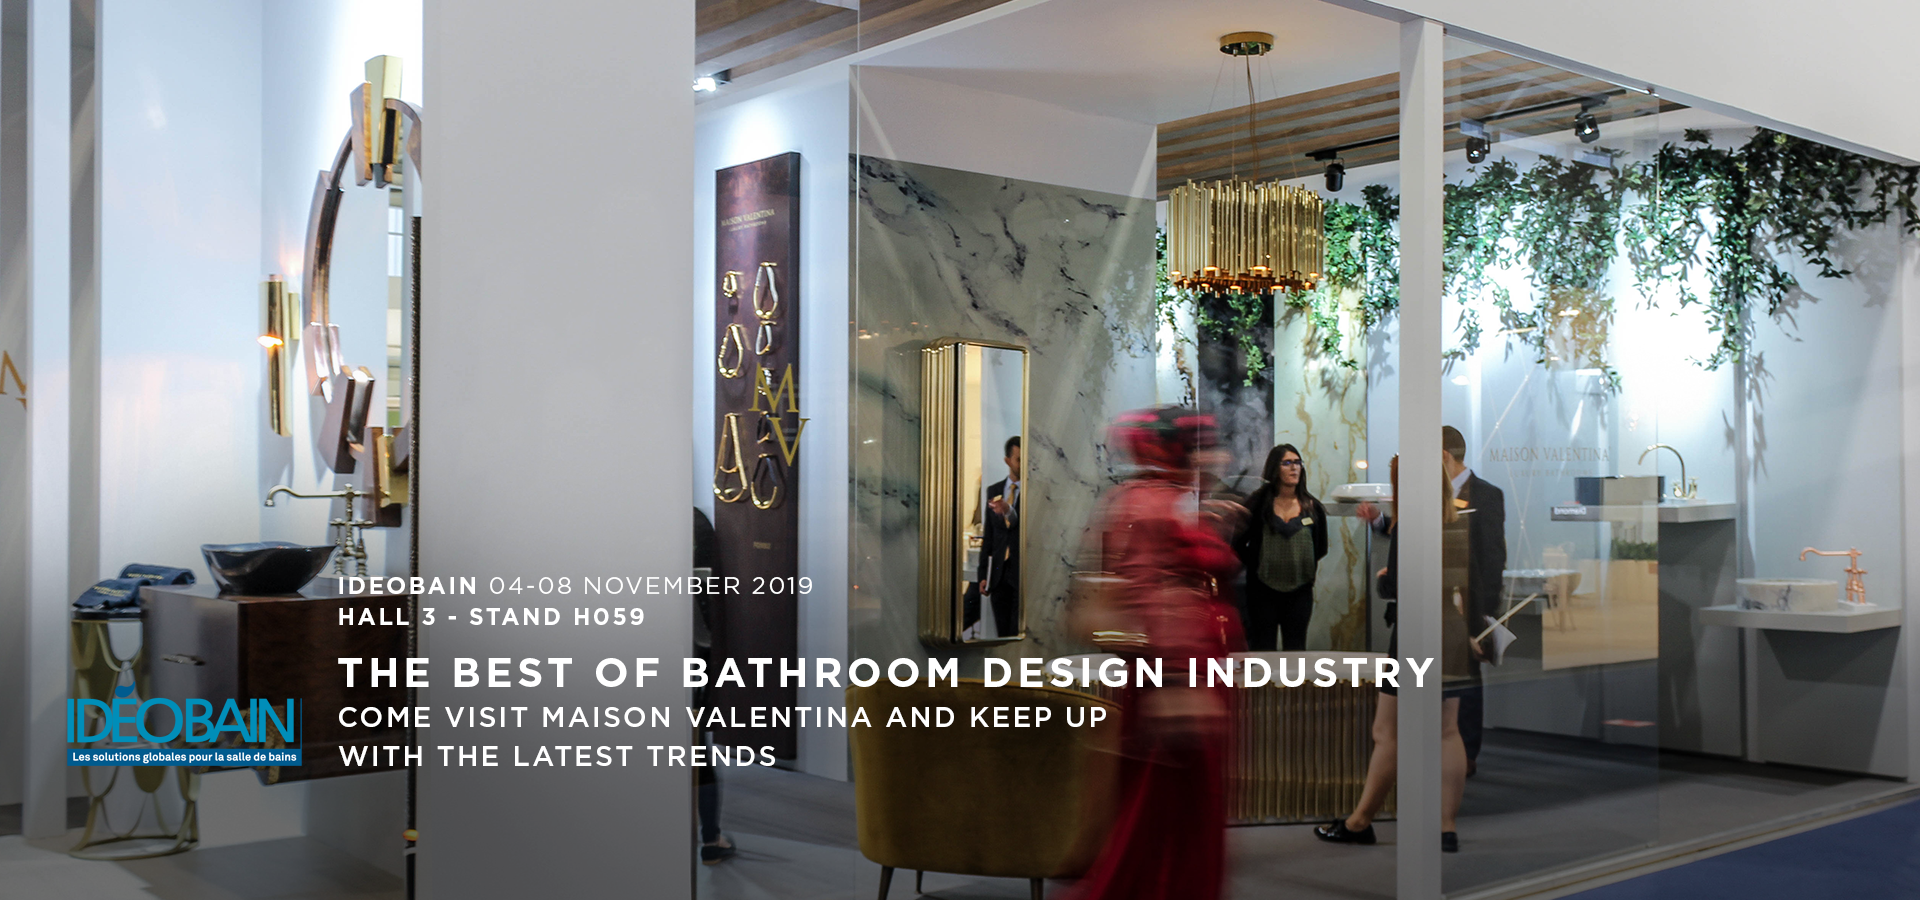 idéobain 2019 Idéobain 2019 – Everything About The French Bathroom Design Event id  obain